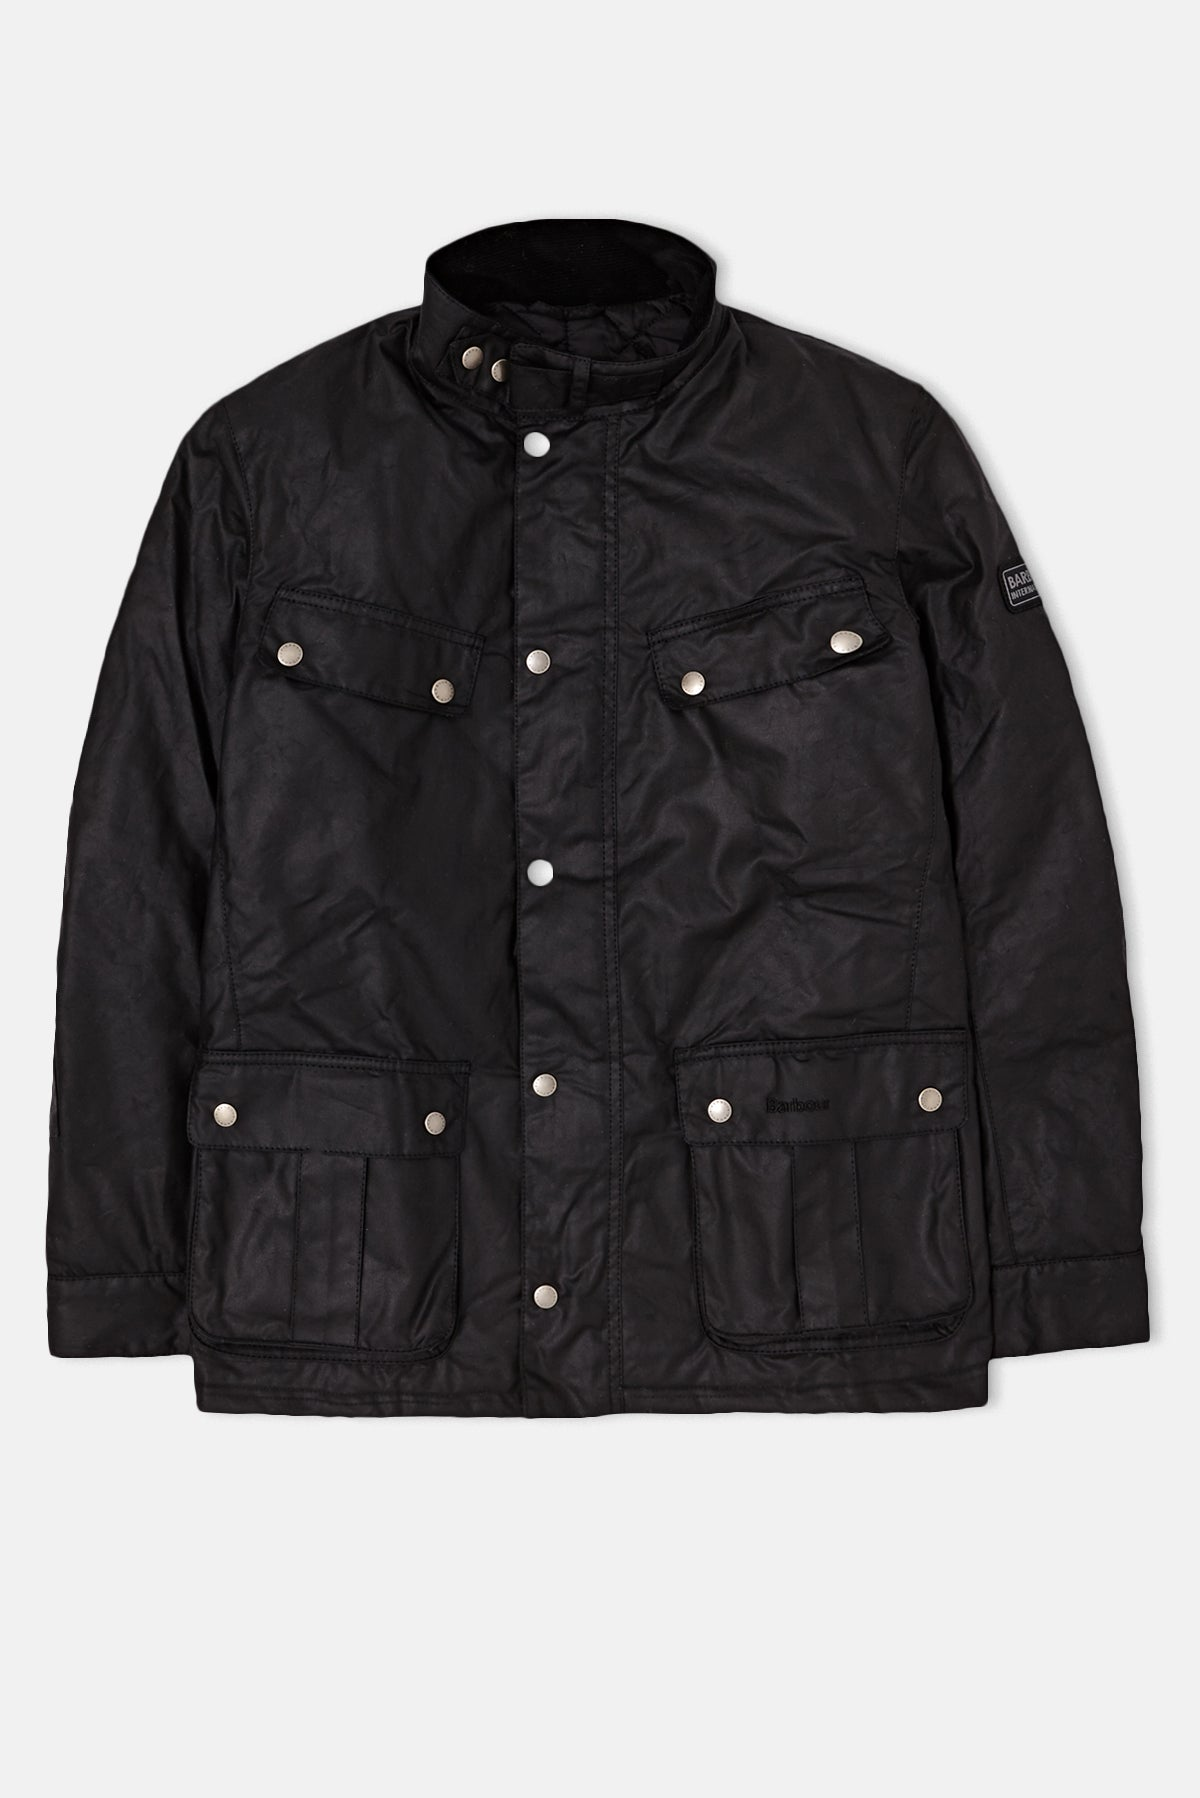 Chaqueta encerada Barbour International Duke disponible de Priory a5b3ef1431369